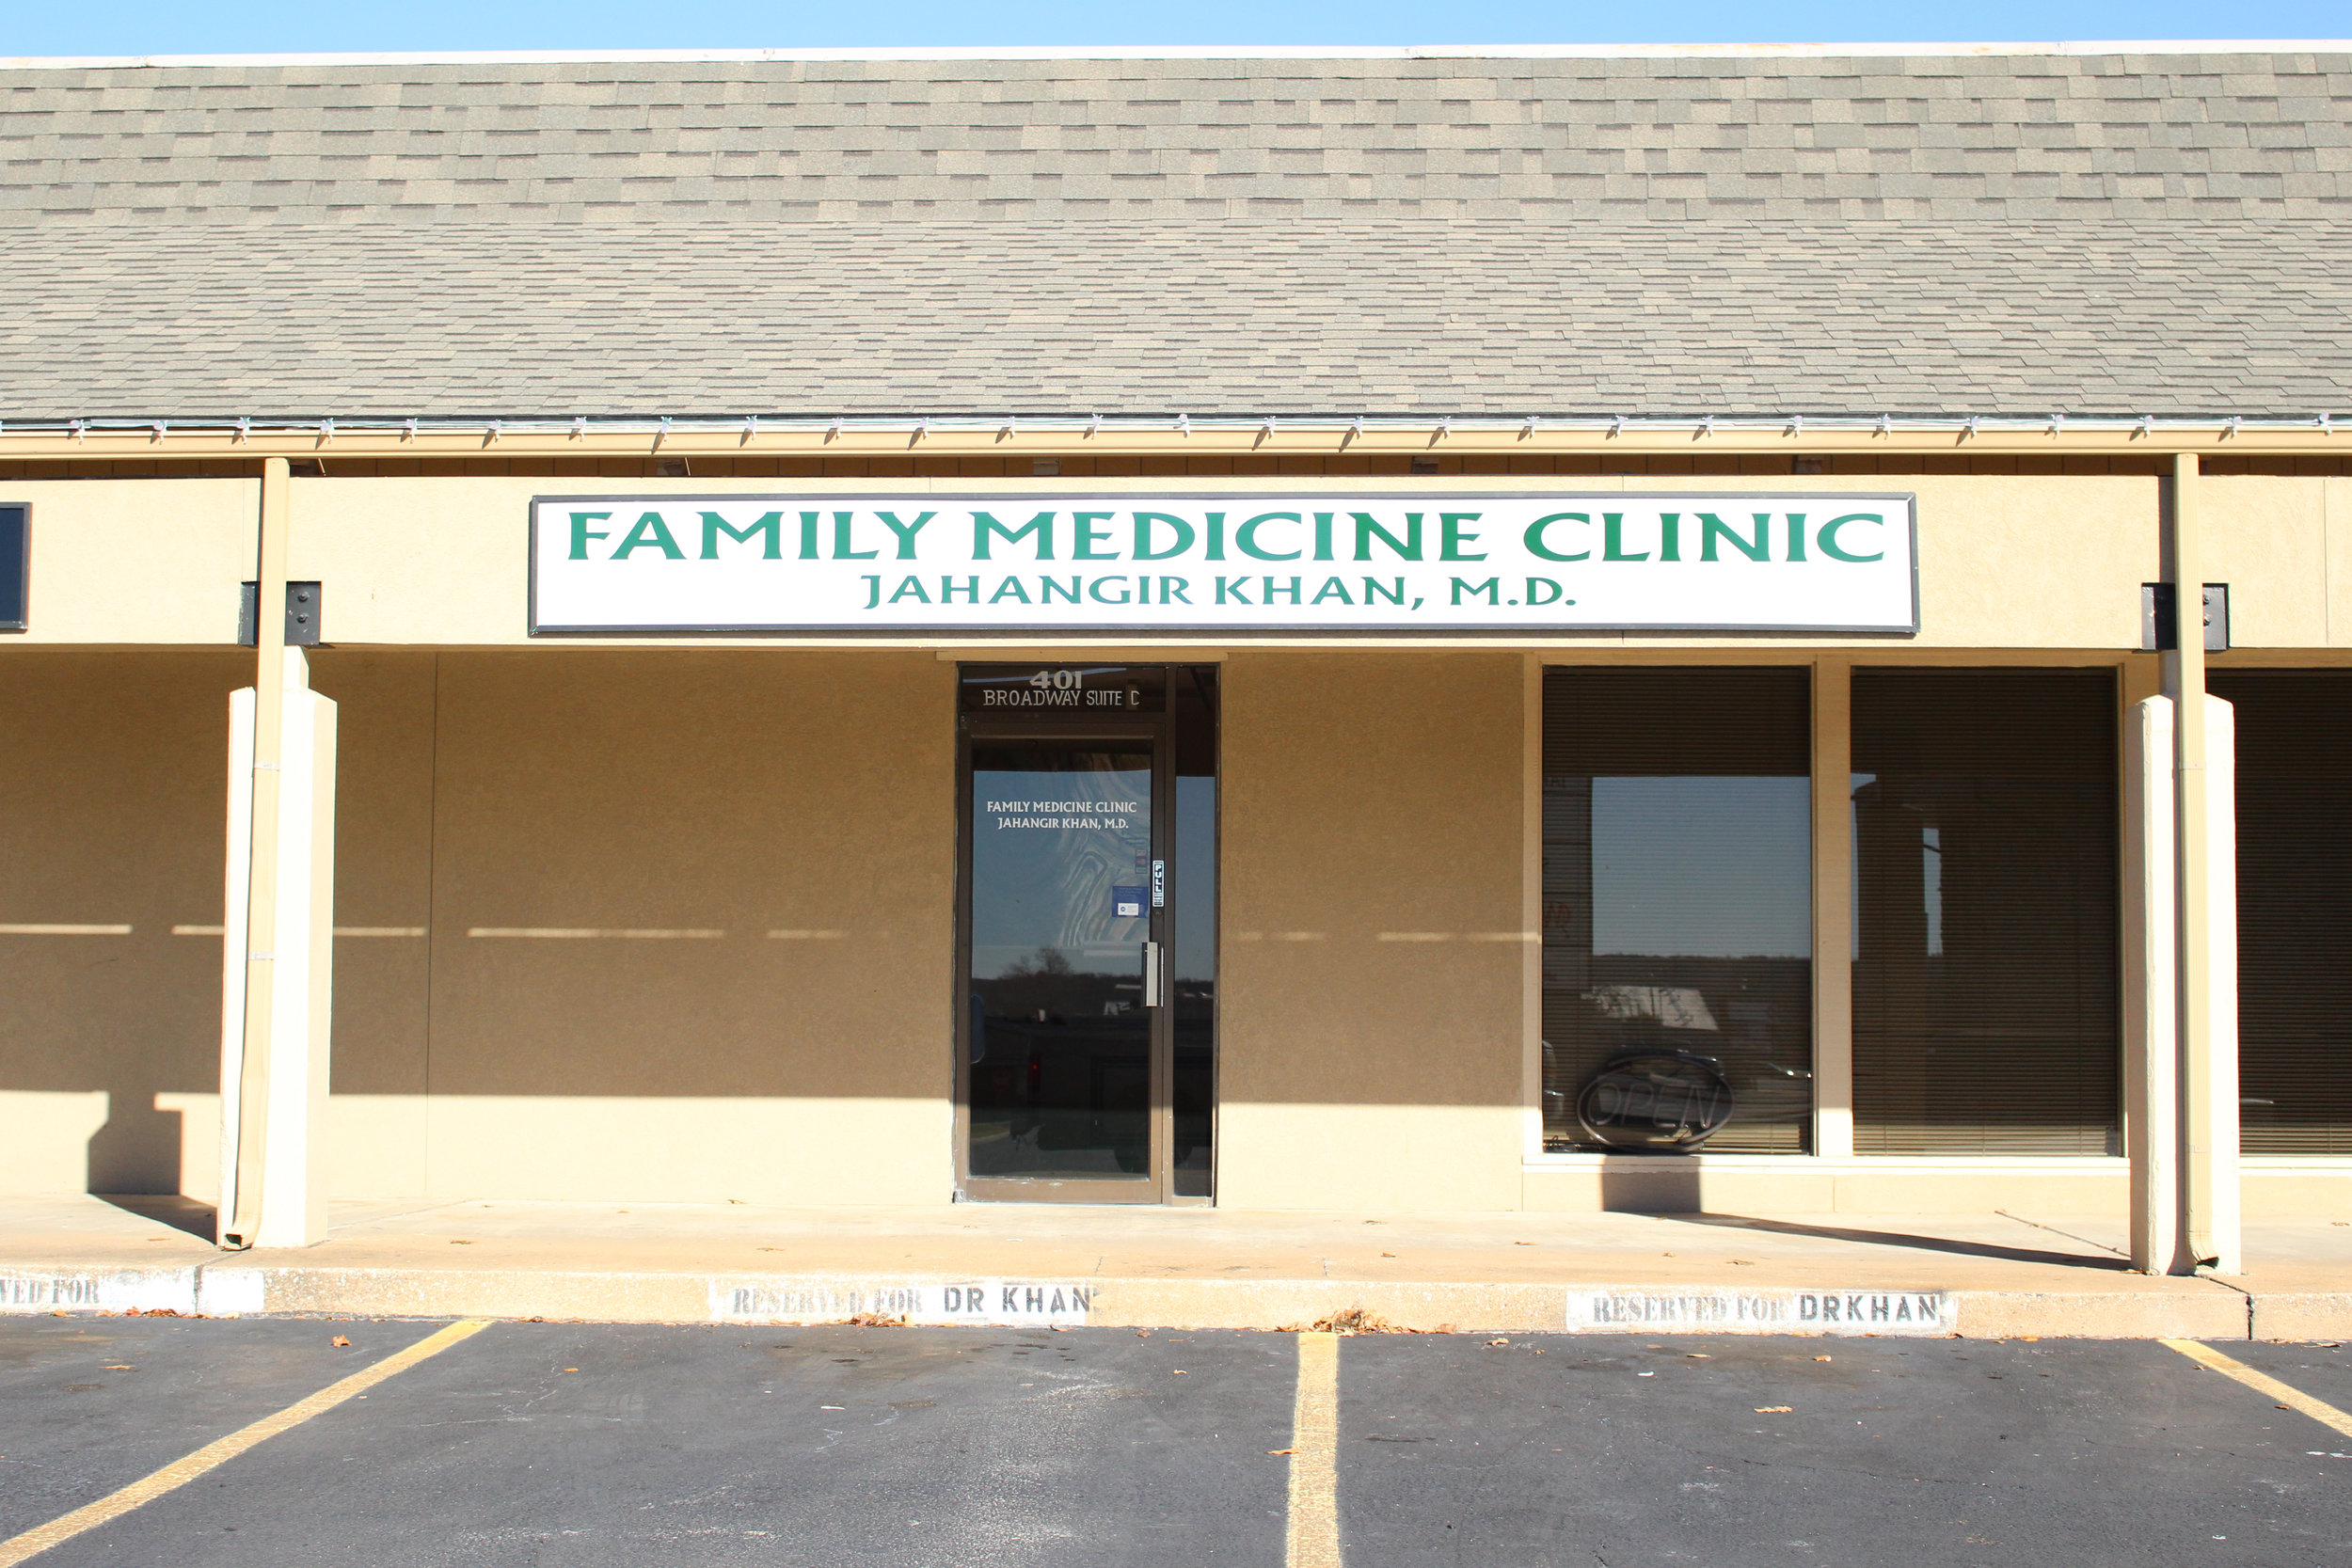 family medicine clinic - village square 401 east broadway court